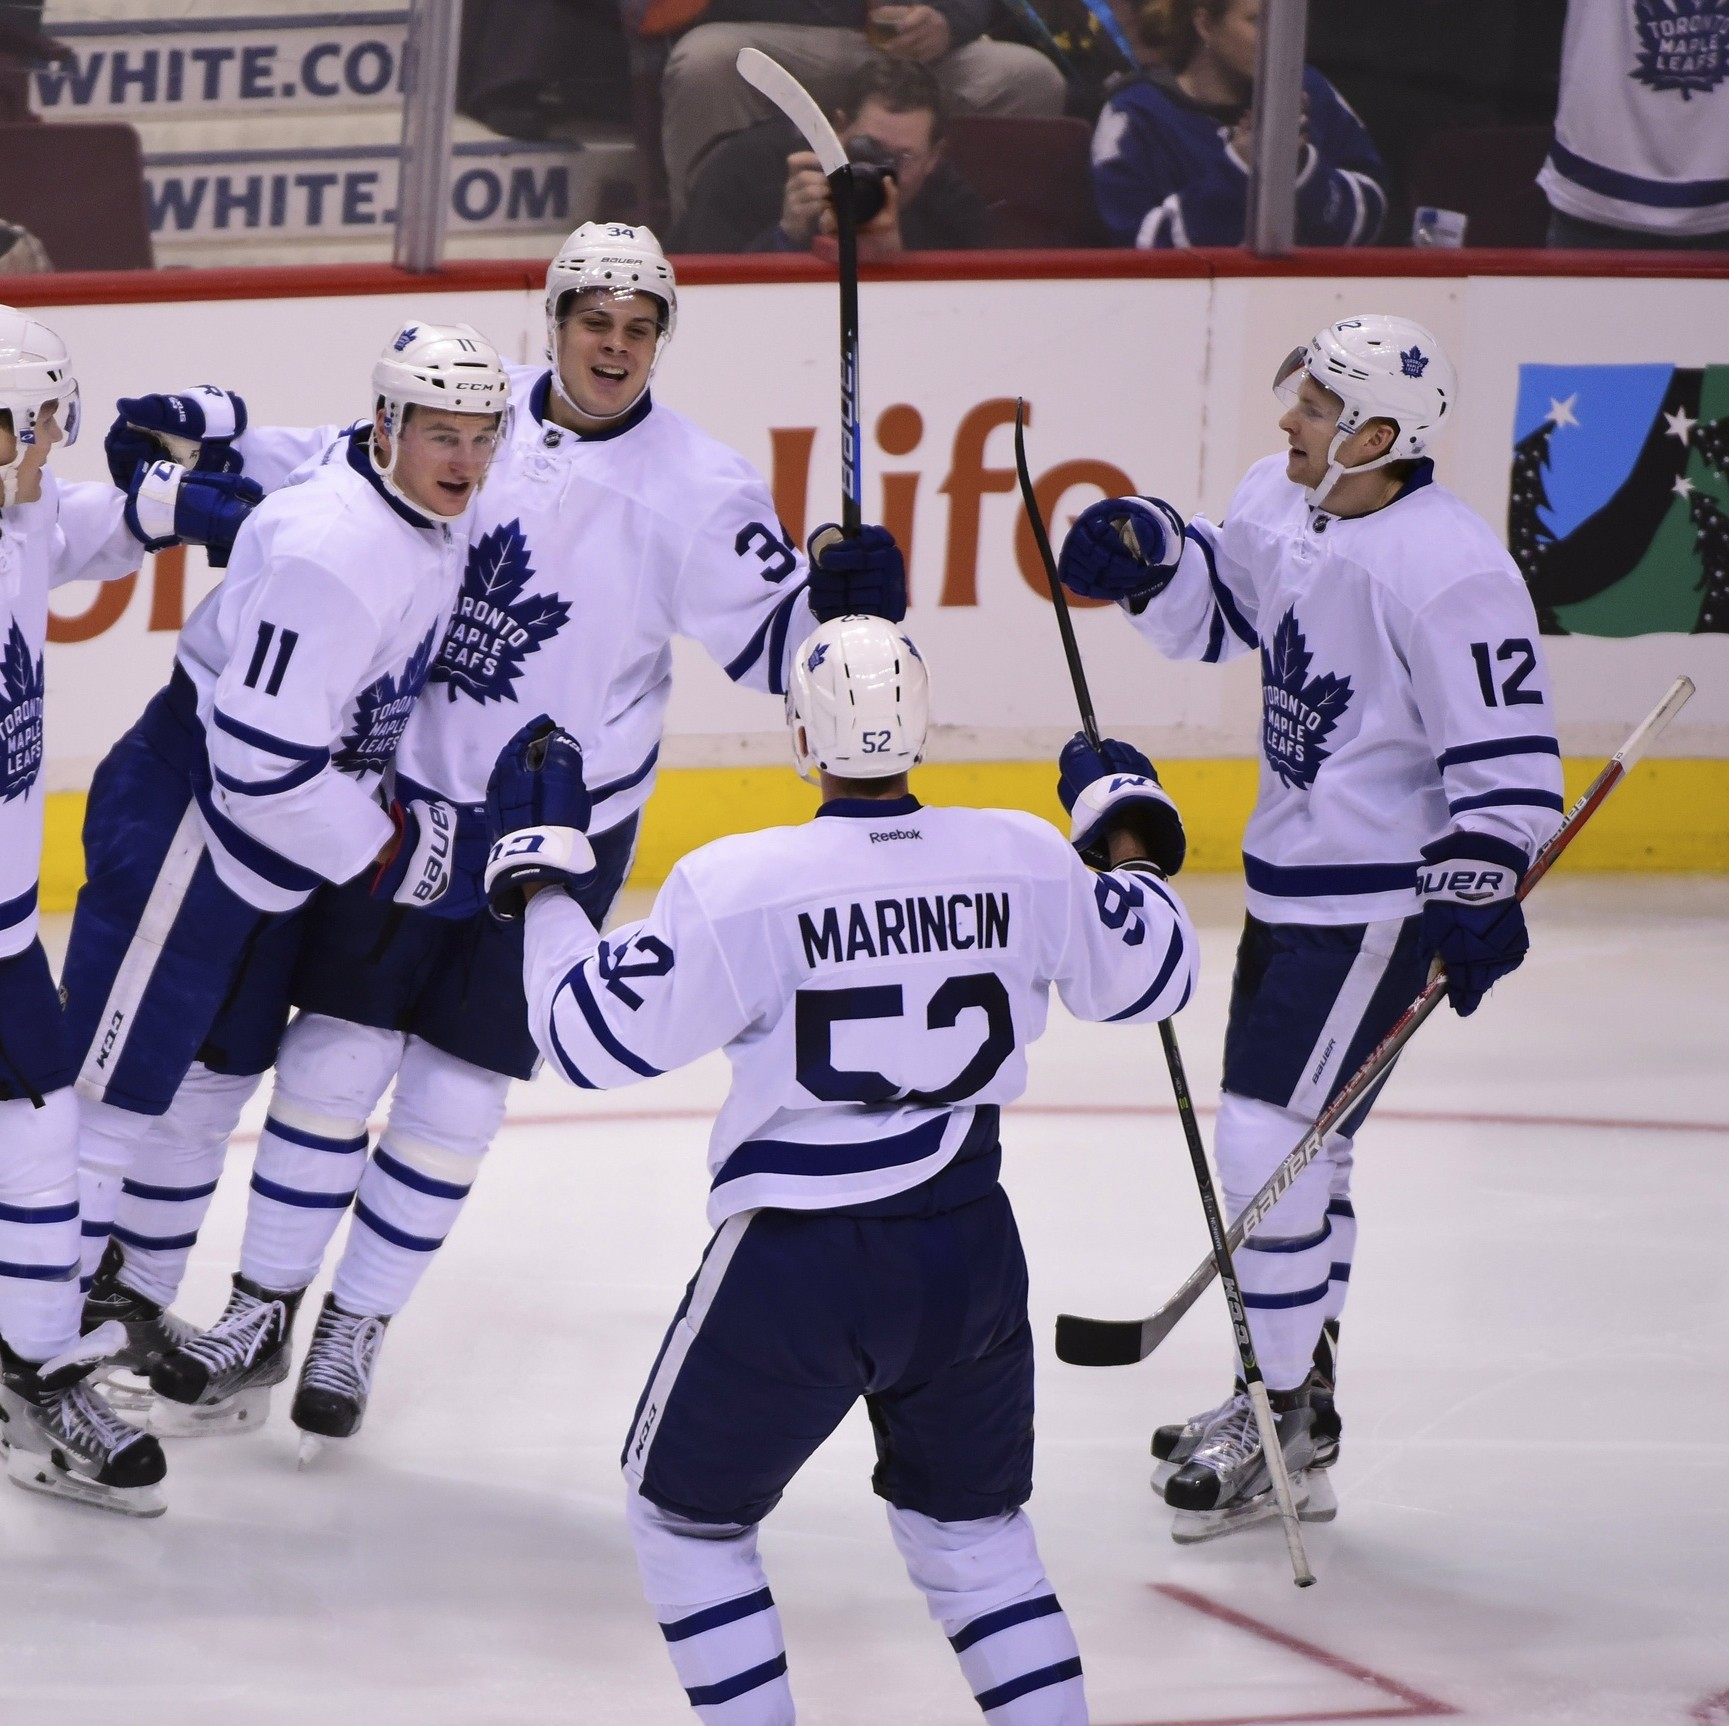 The-toronto-maple-leafs-will-make-the-playoffsmaybe-1481038589.jpg?crop=0.81640625xw:1xh;0